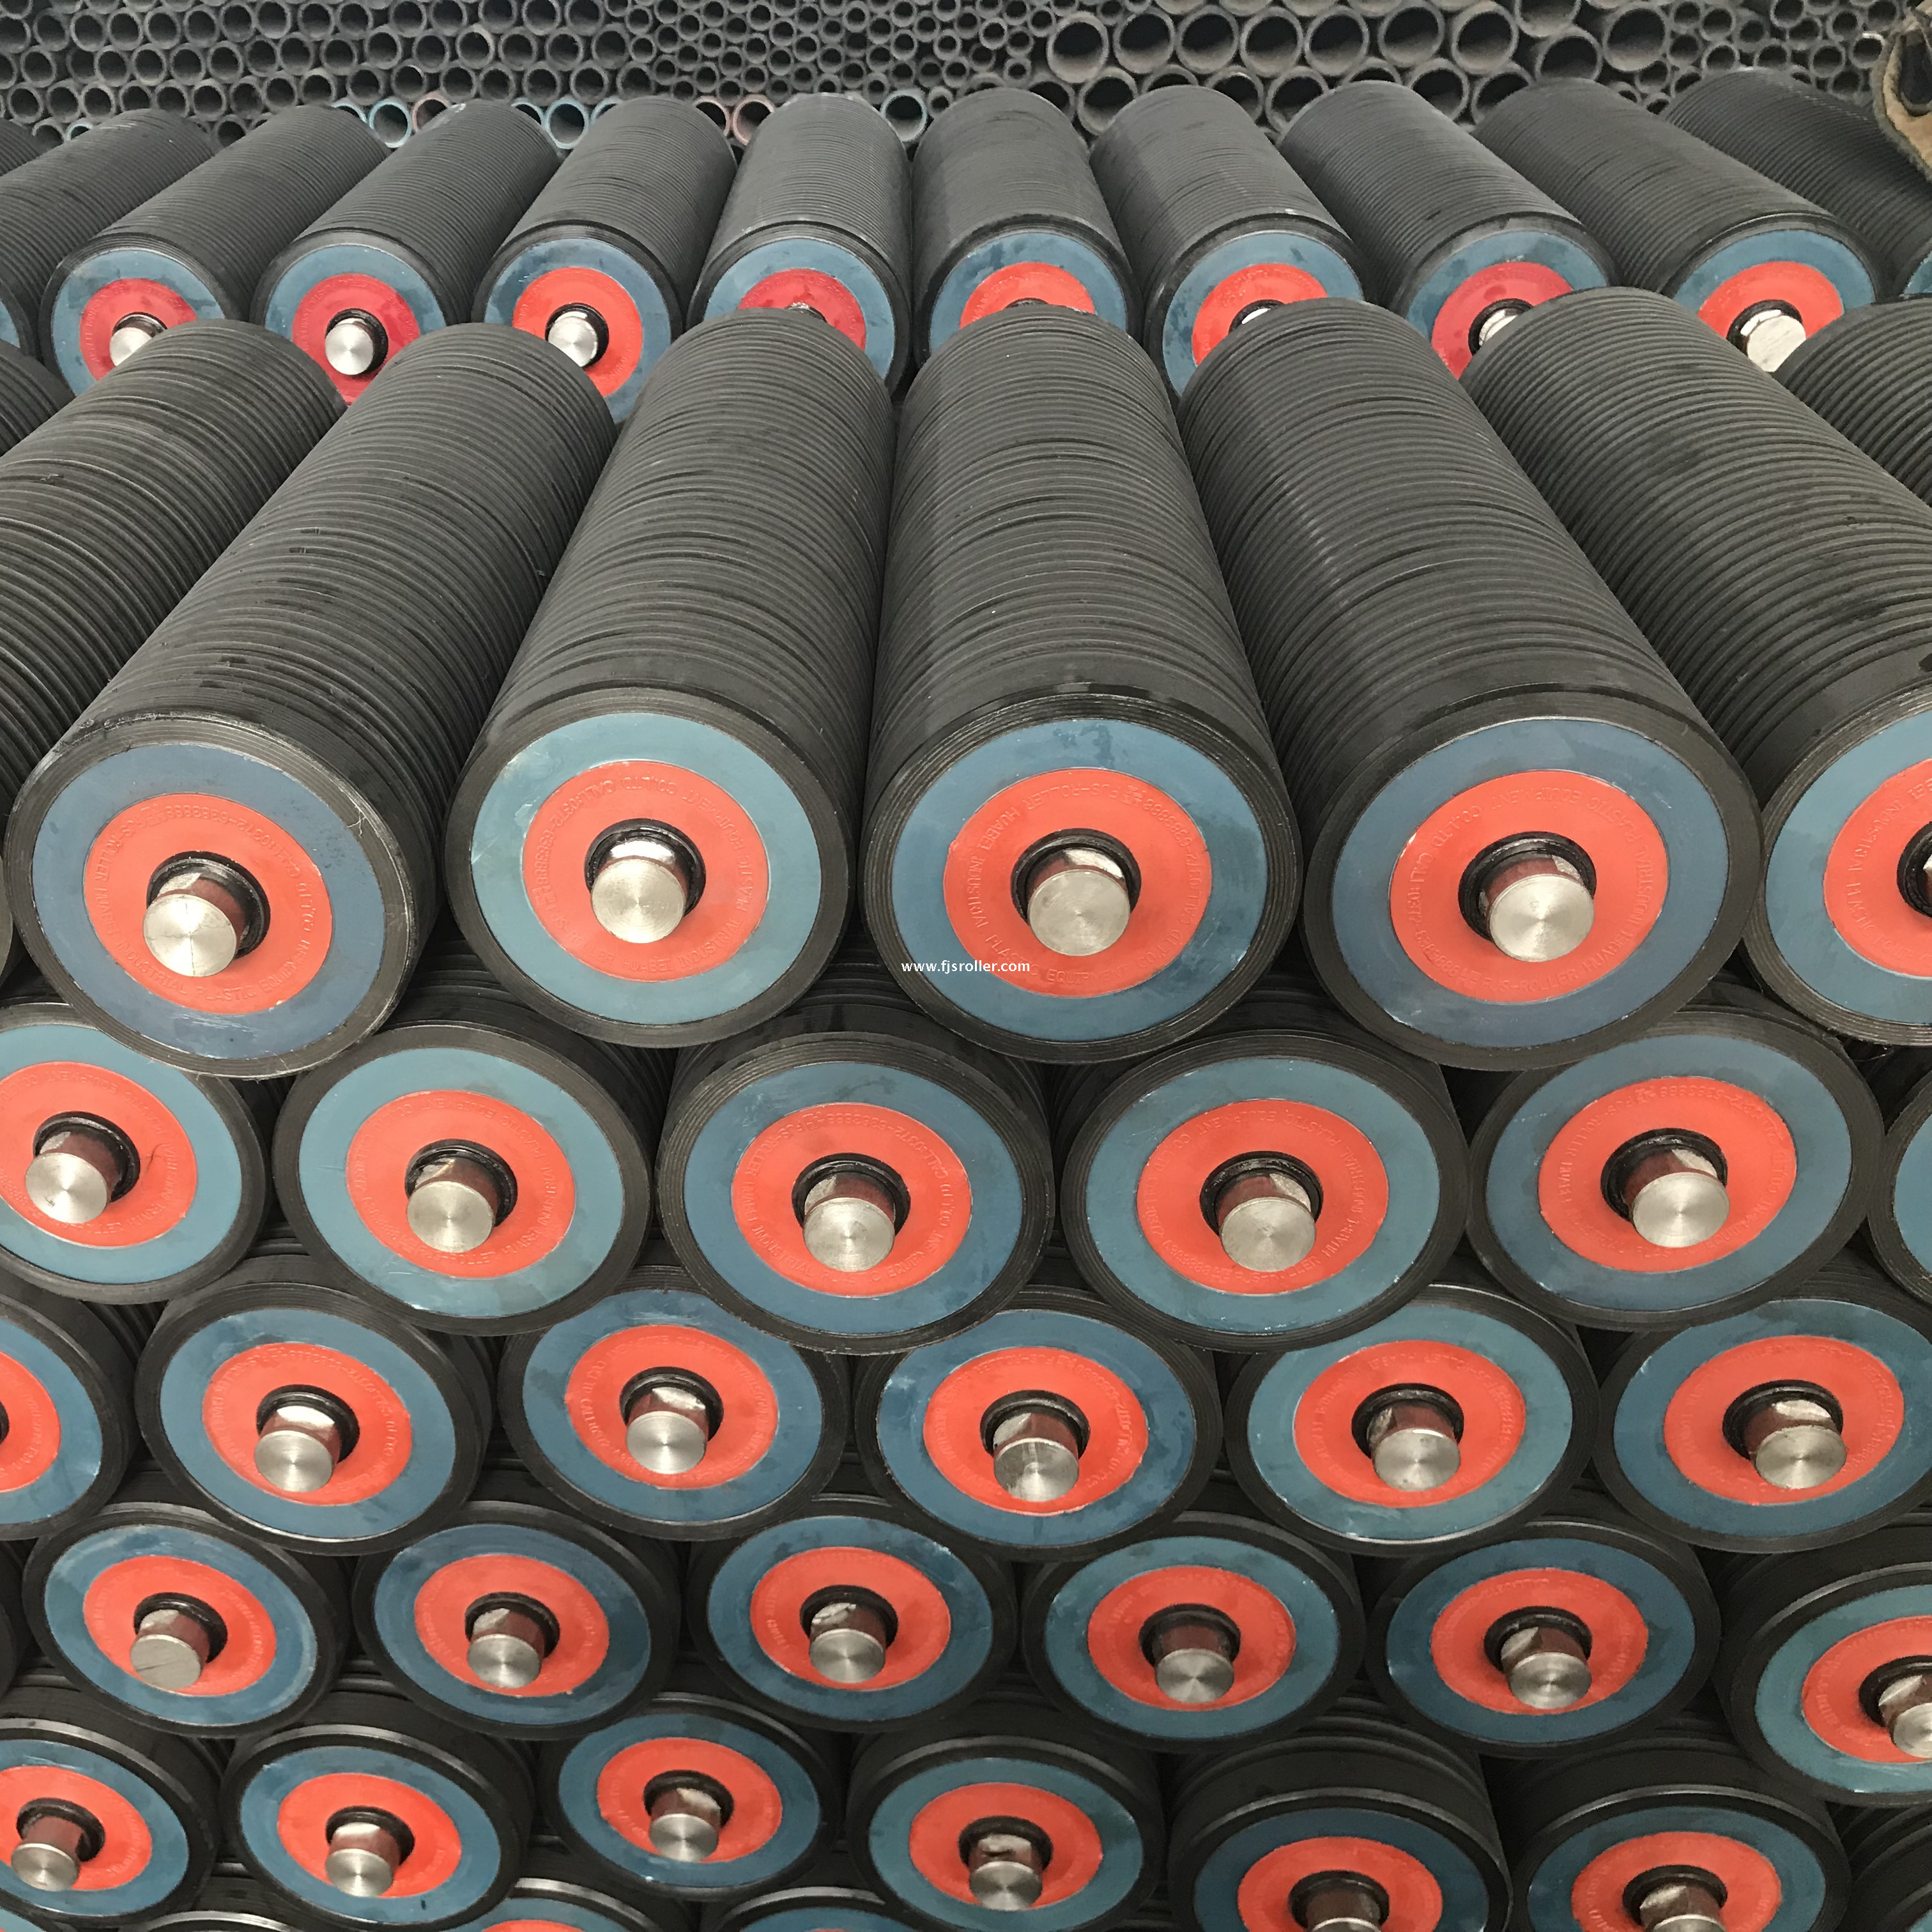 127mm dia dustproof and waterproof low noise HDPE conveyor idler roller